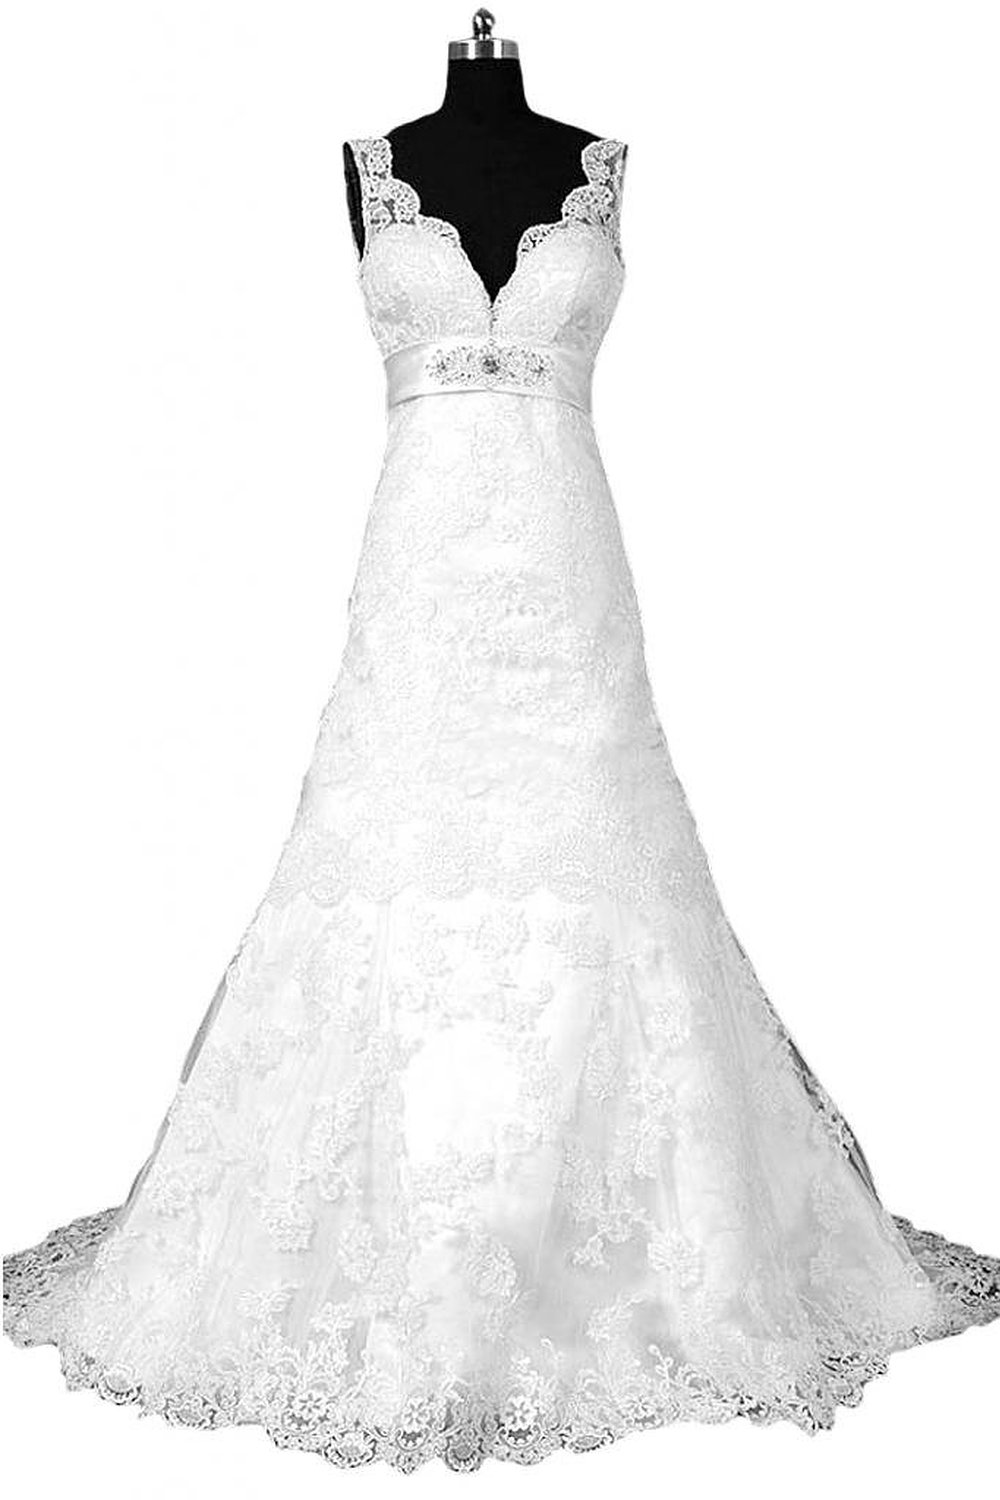 Pretty wedding dresses for under 500 time for the holidays for Mermaid wedding dresses under 500